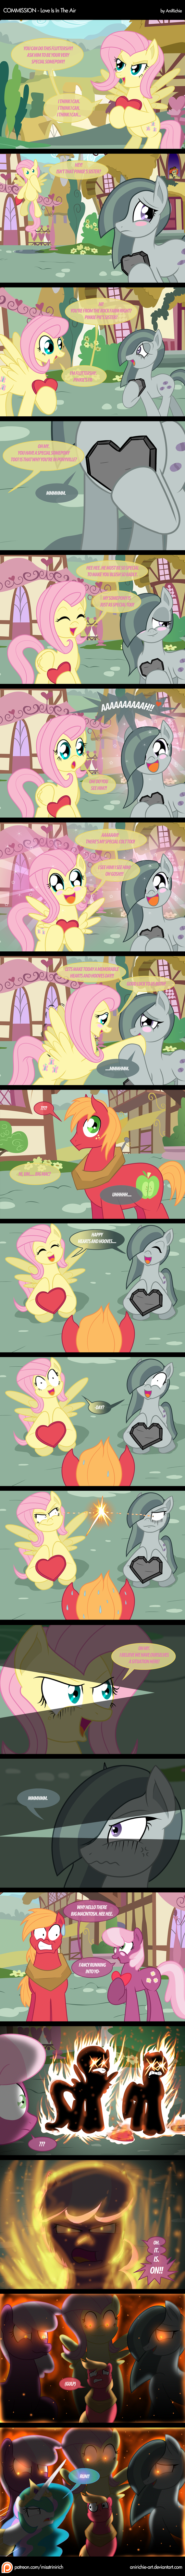 COM - Love Is In The Air (COMIC)